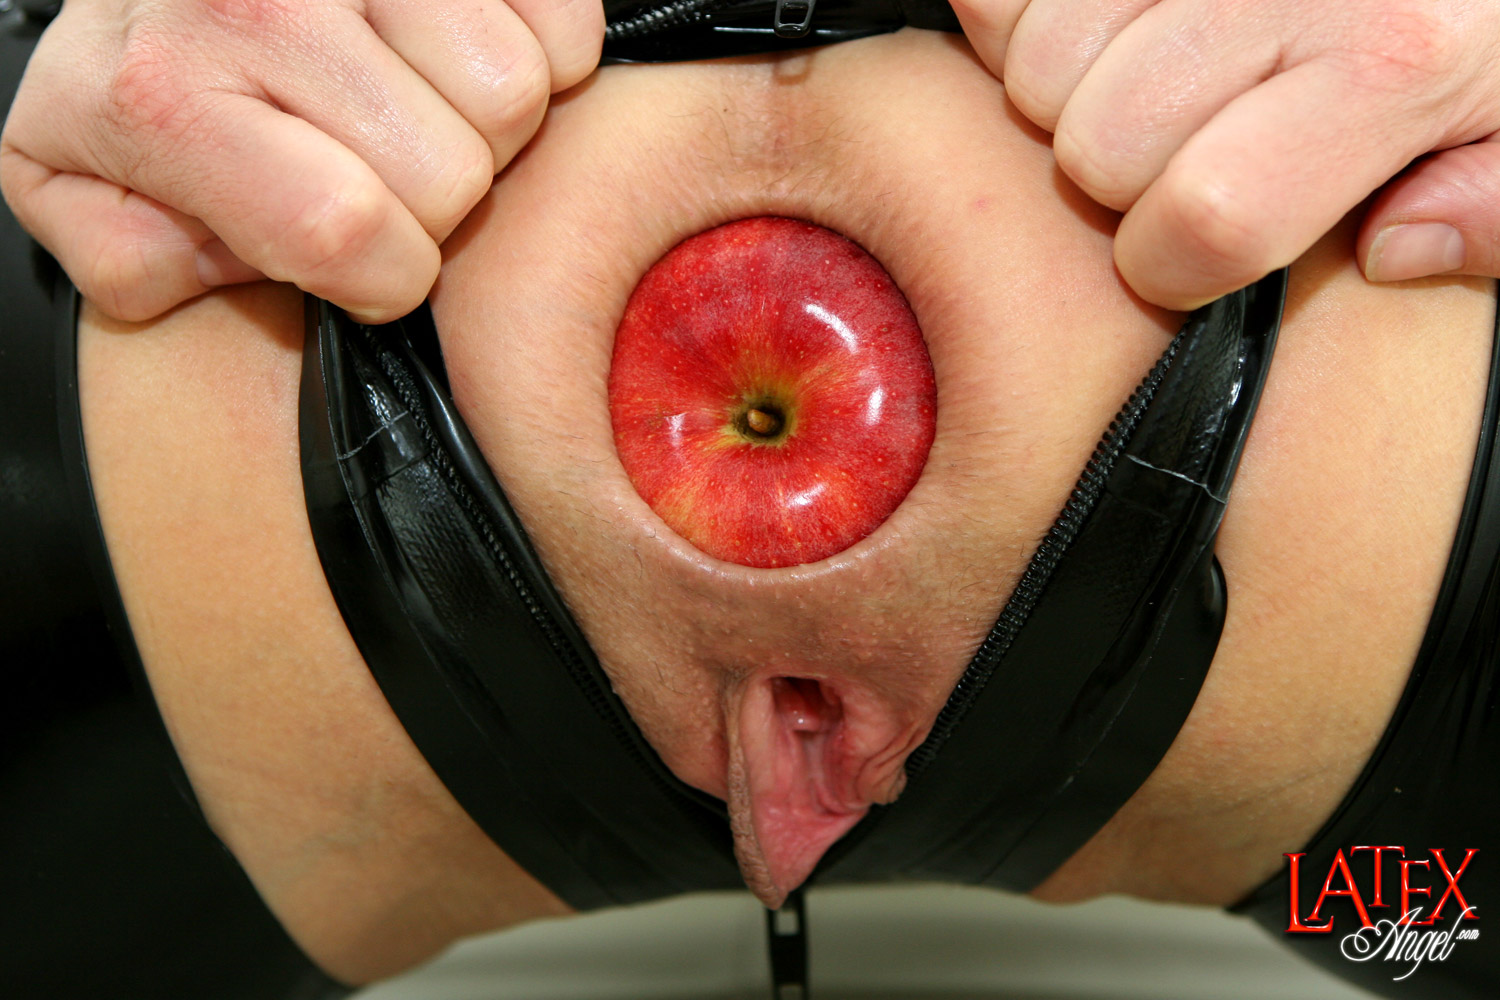 [LatexAngel] Apples in Butthole